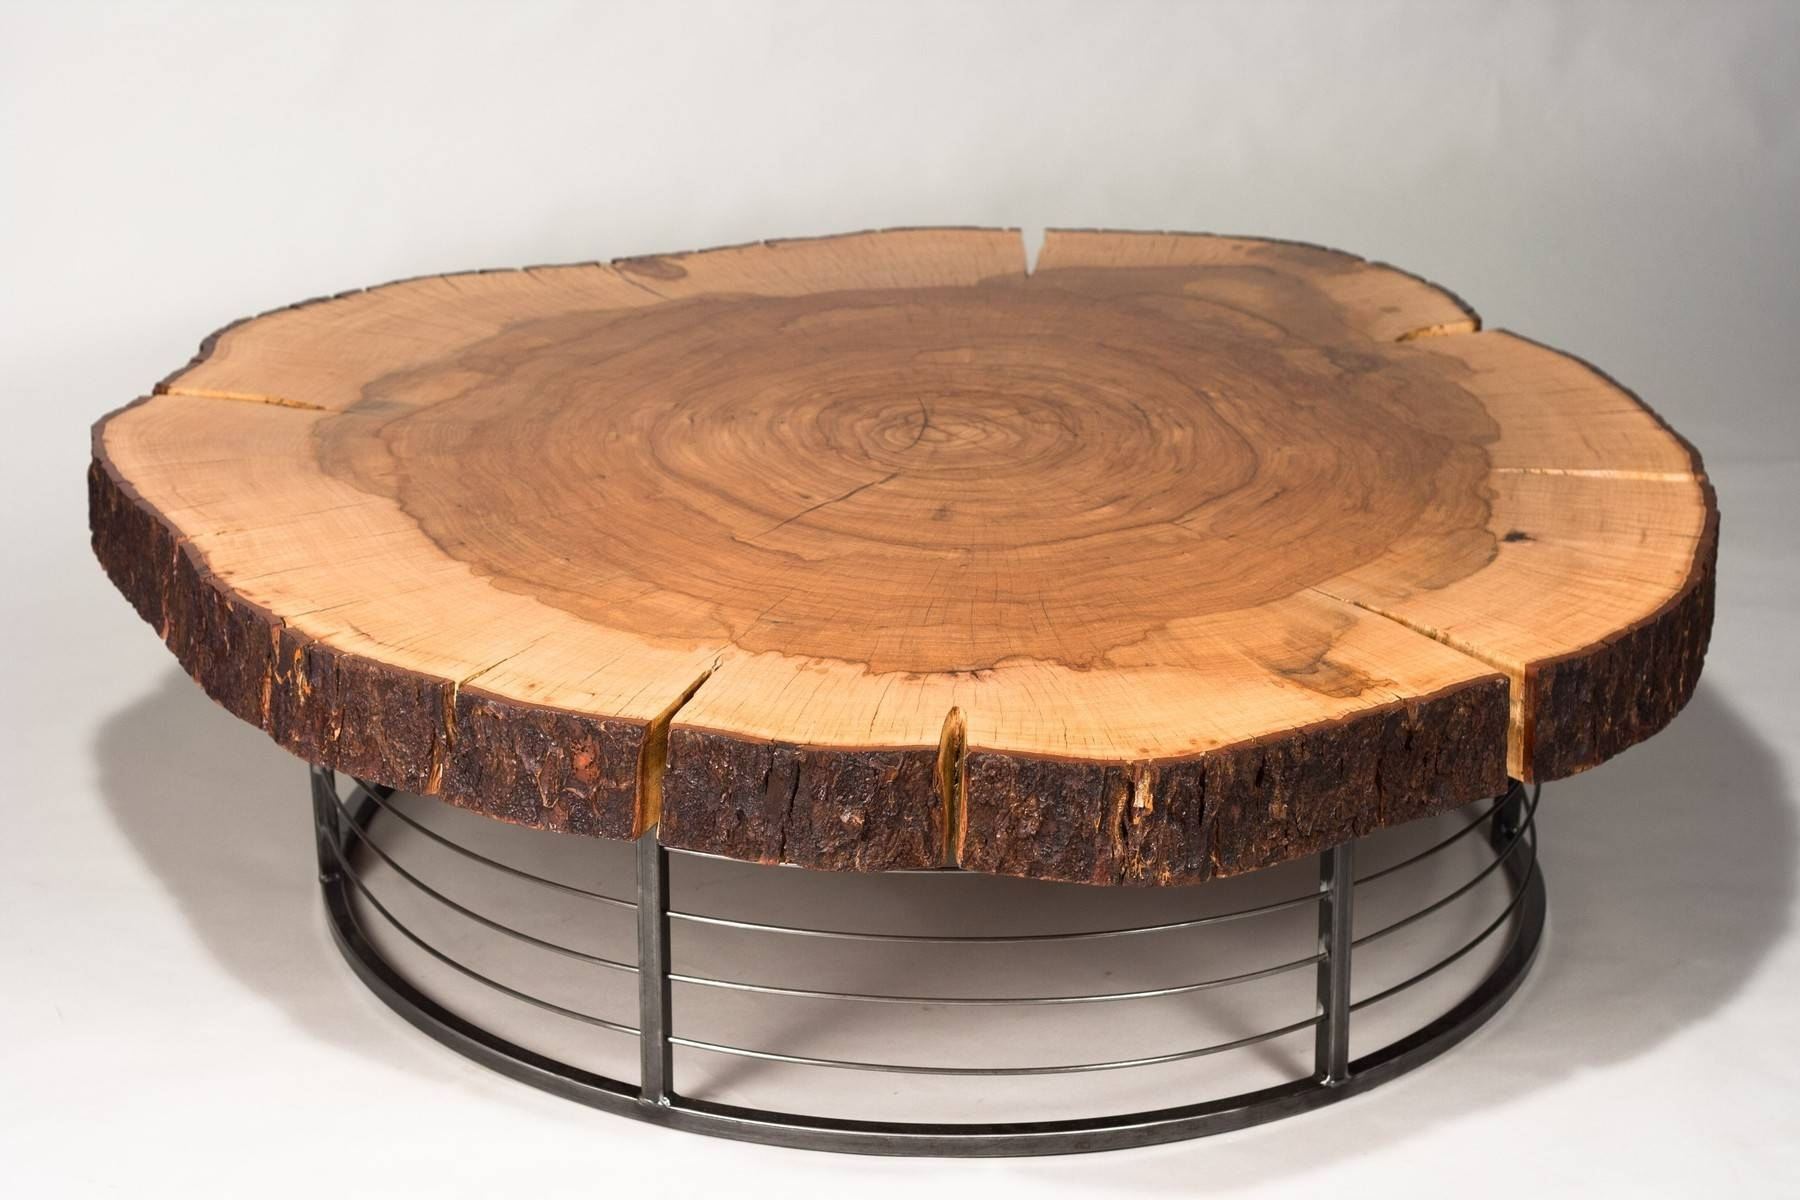 Convertible Coffee Table Amazon | Decorative Table Decoration intended for Large Trunk Coffee Tables (Image 5 of 30)